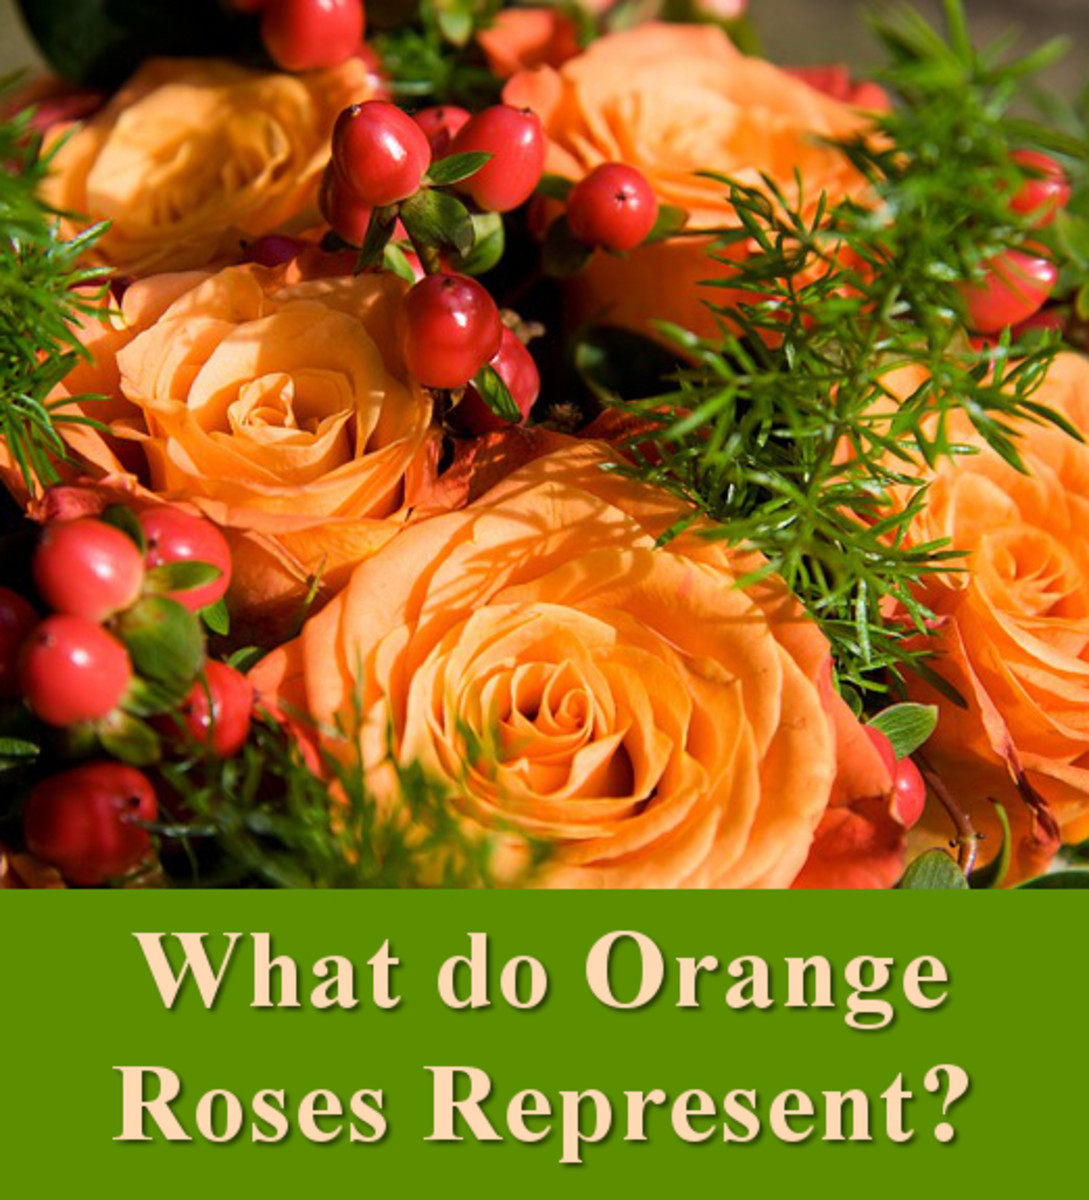 What do orange roses represent?